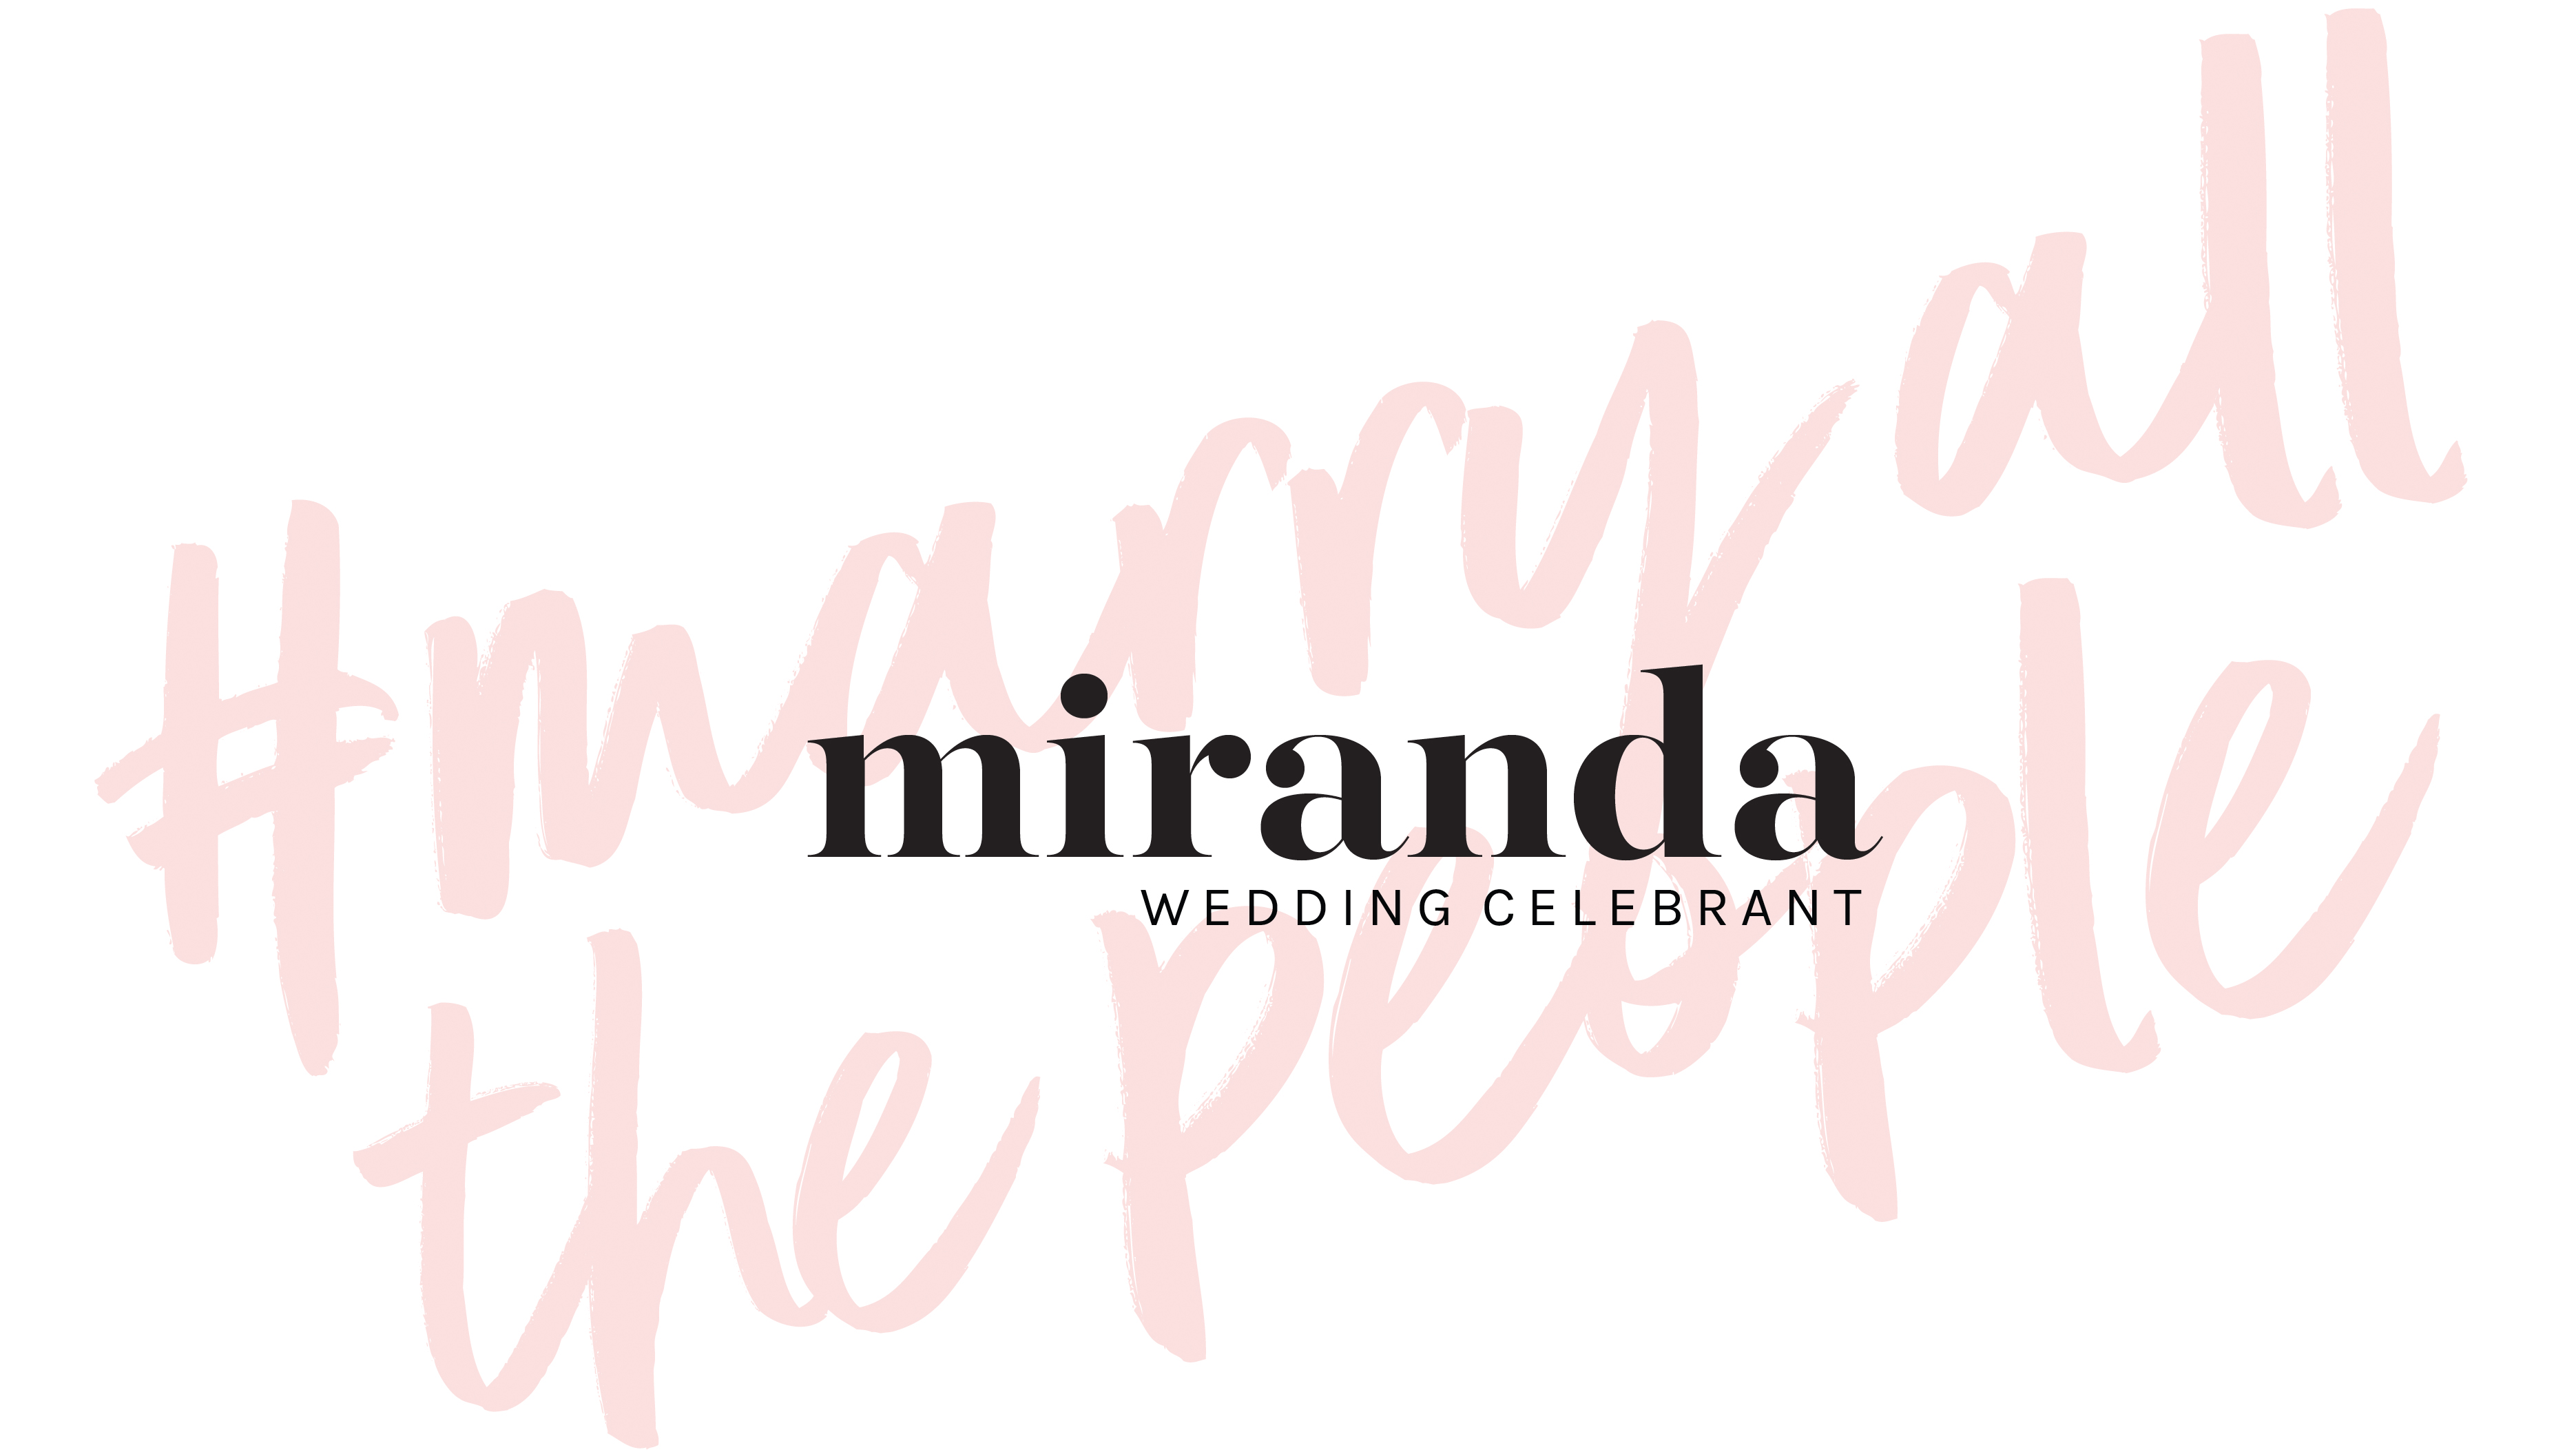 MIRANDA - WEDDING CELEBRANT